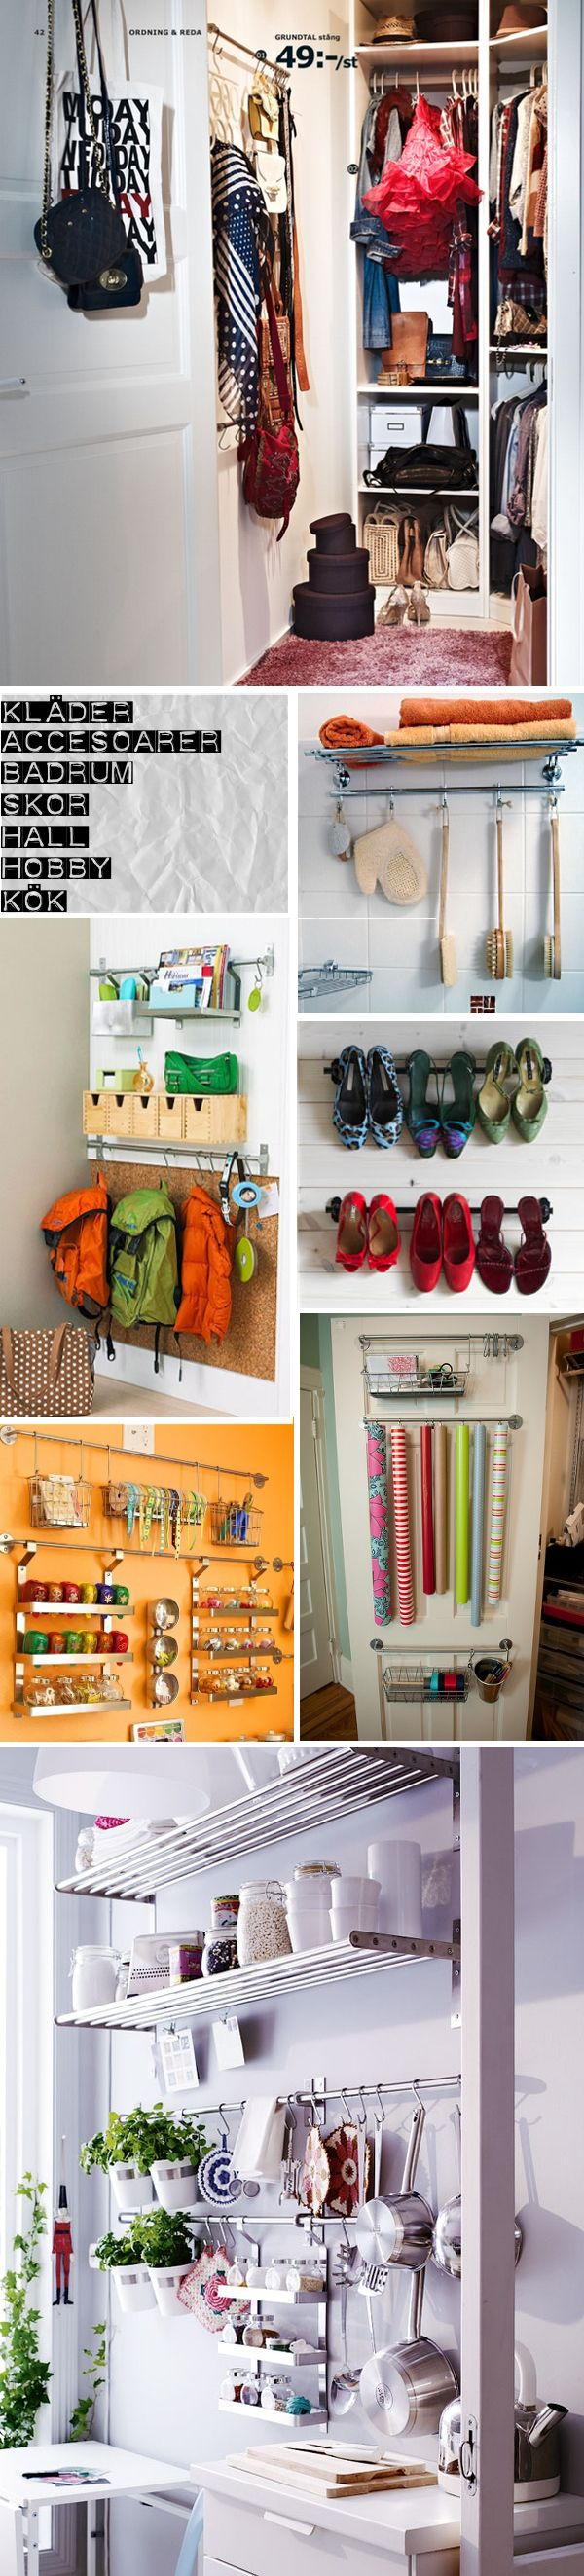 Organize everything from shoes to kitchen utensils!